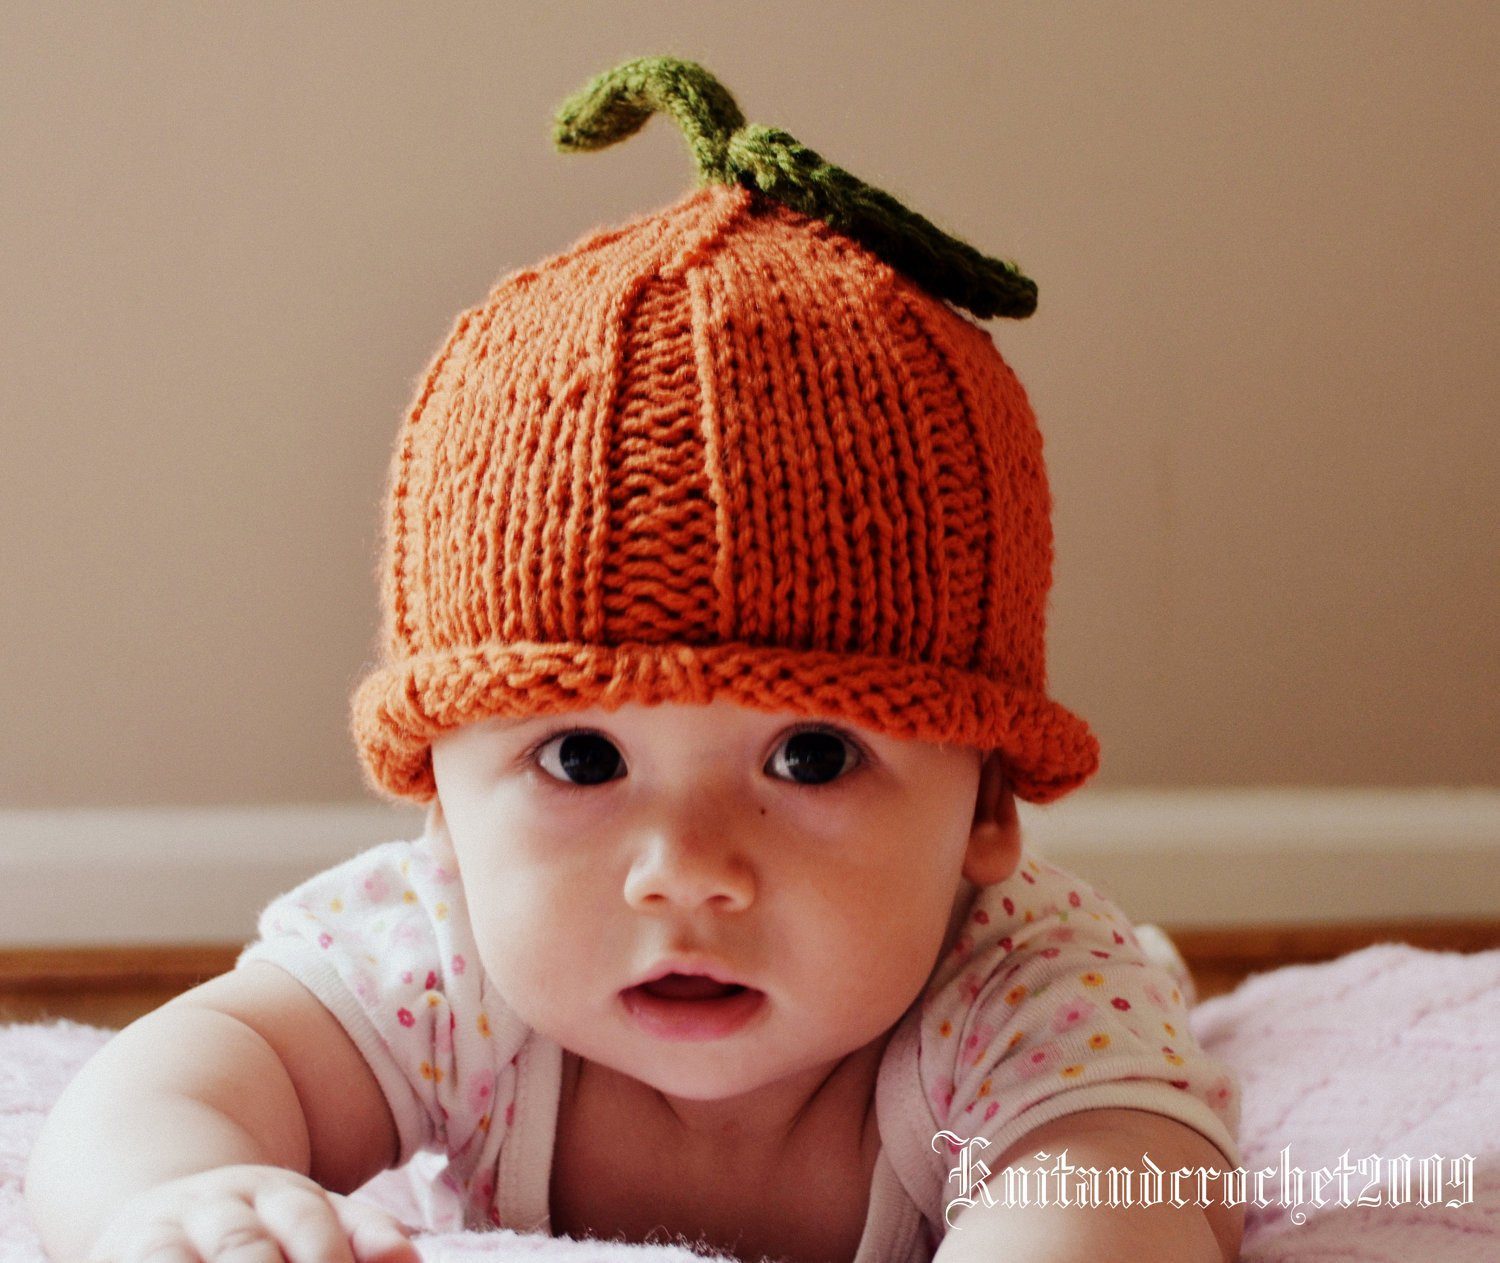 Awesome Pumpkin Hat Pixie Baby Infant Newborn Knit Handmade Cute Knitted Pumpkin Hat Of Marvelous 40 Ideas Knitted Pumpkin Hat